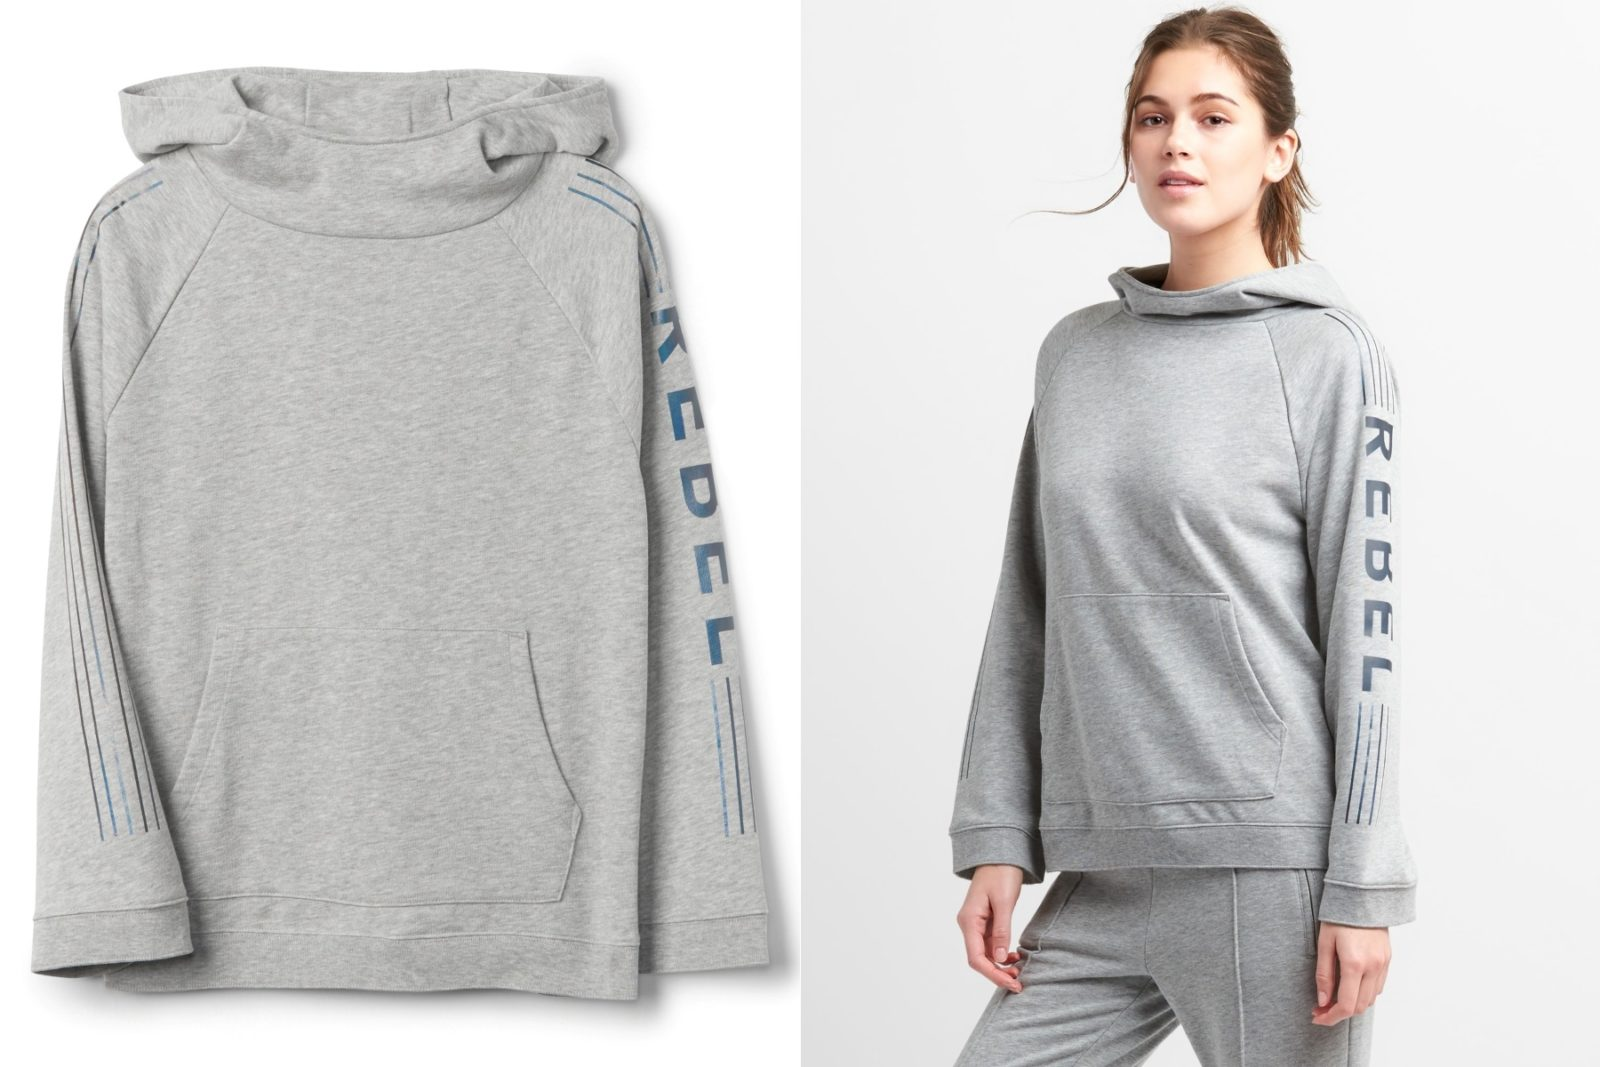 Women's Star Wars Rebel Hoodie on Sale at Gap